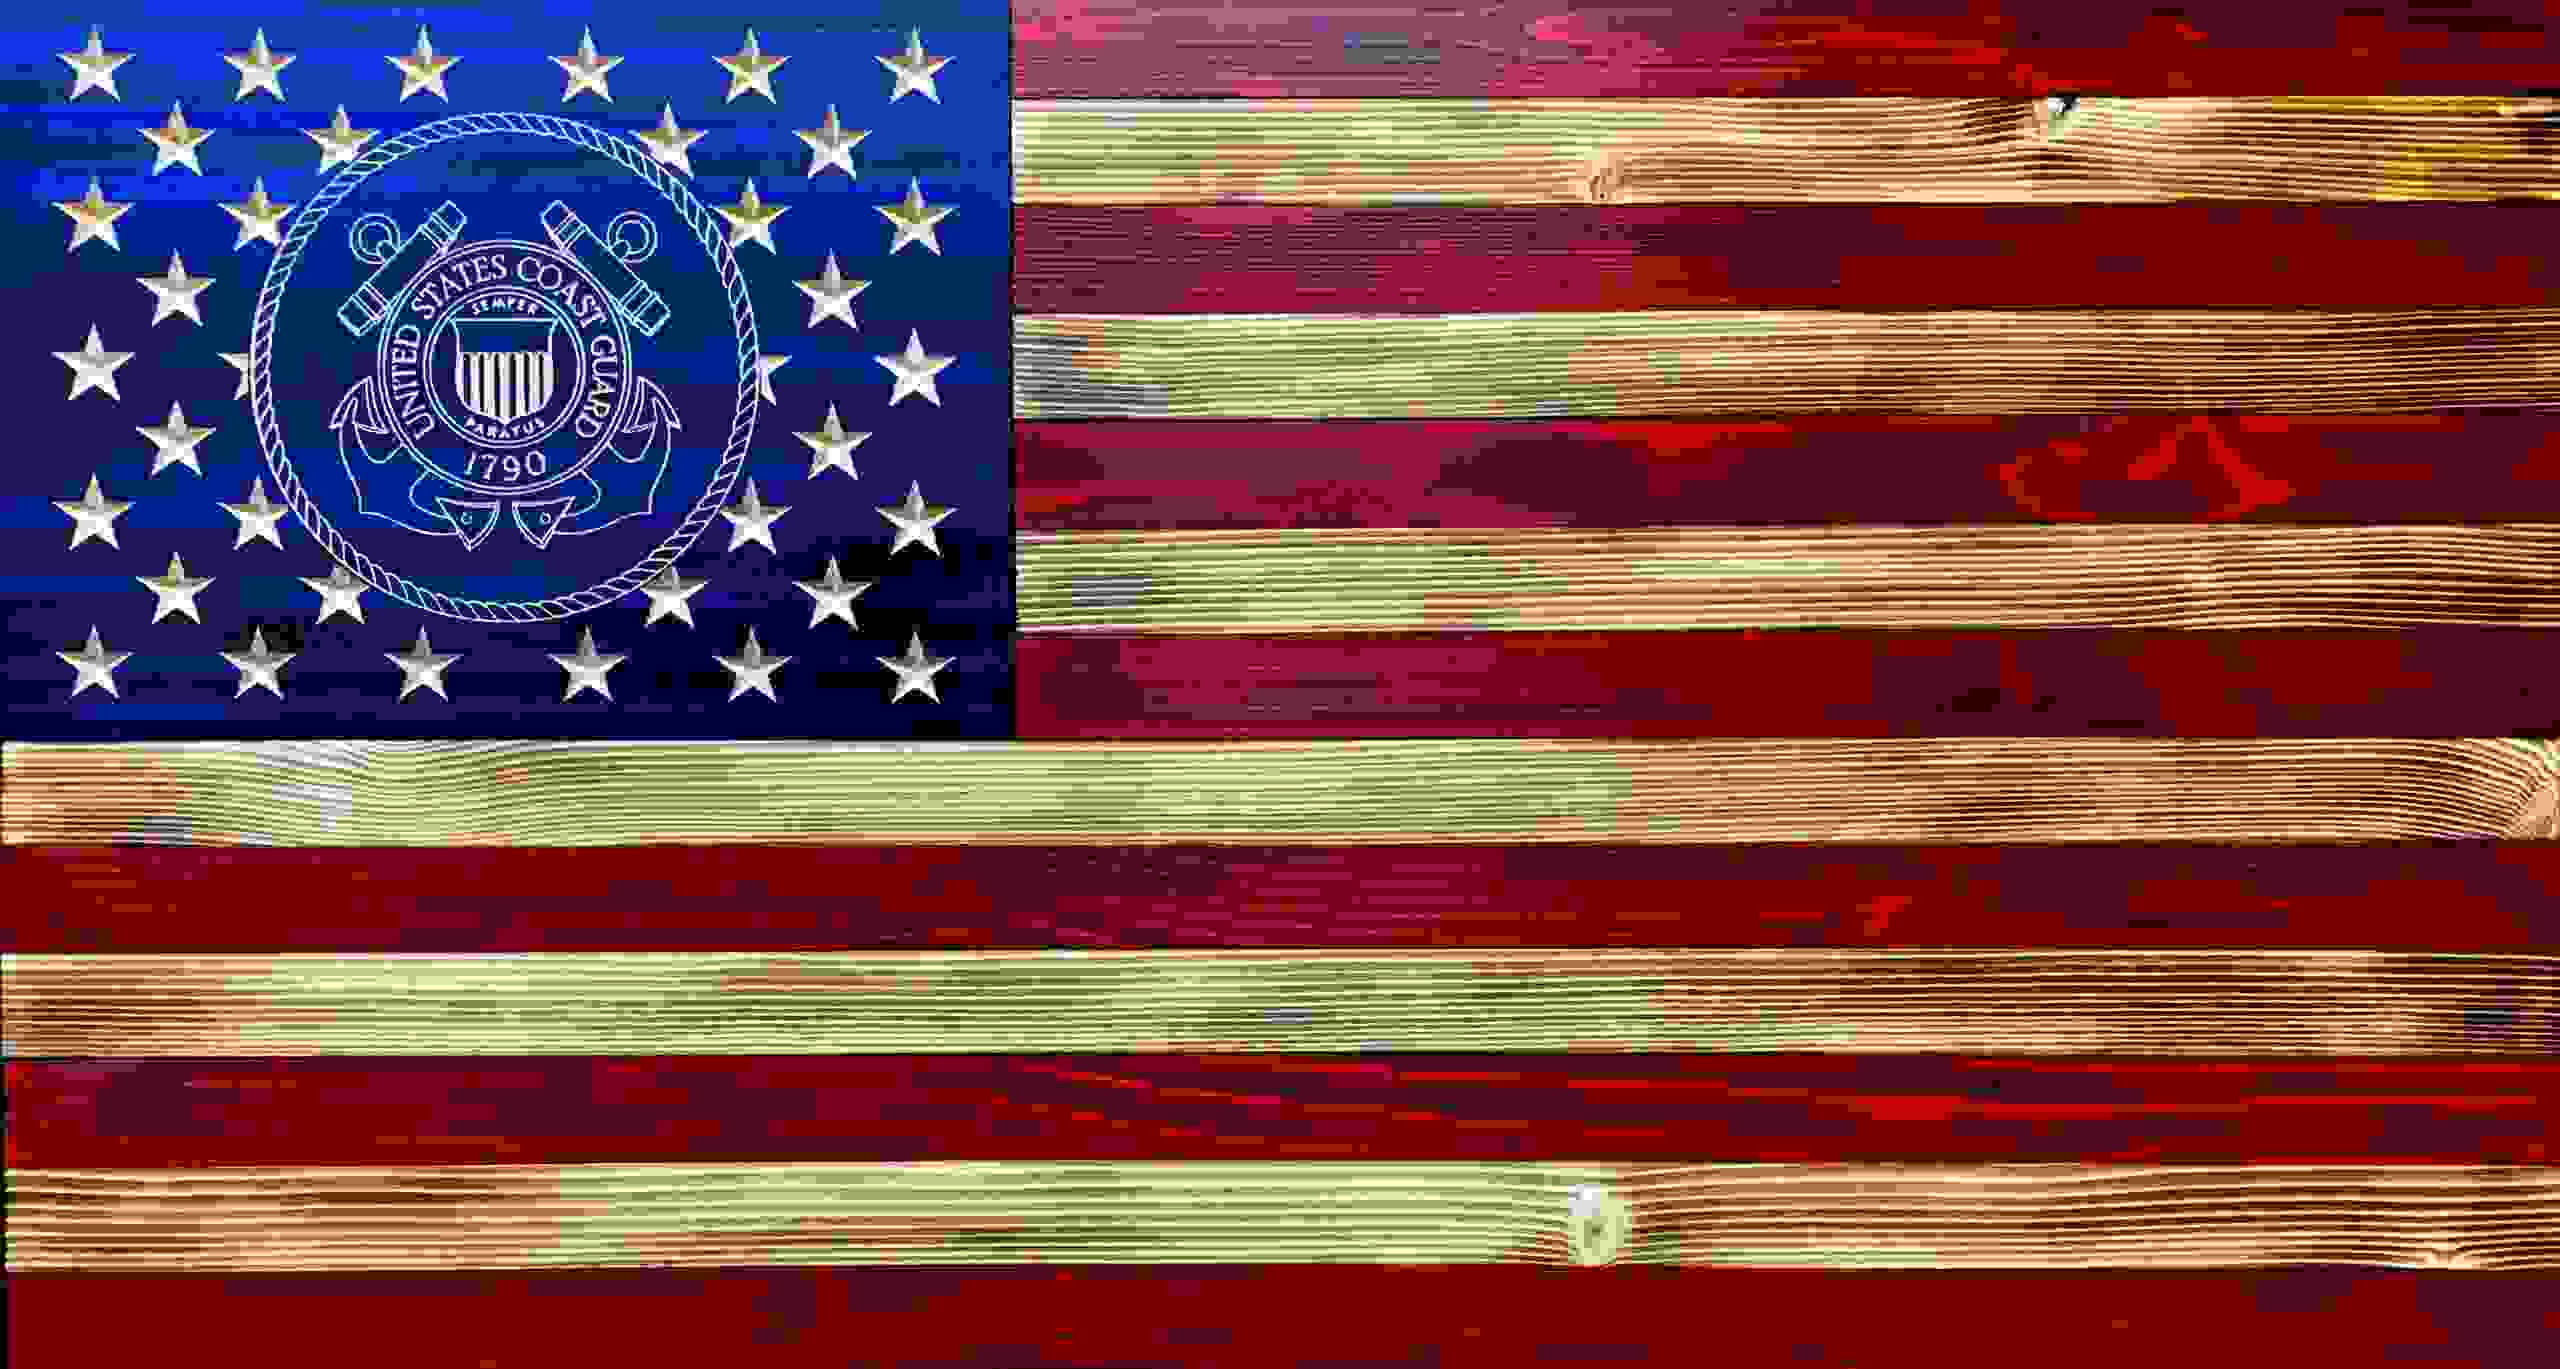 US Coast Guard wooden flag.